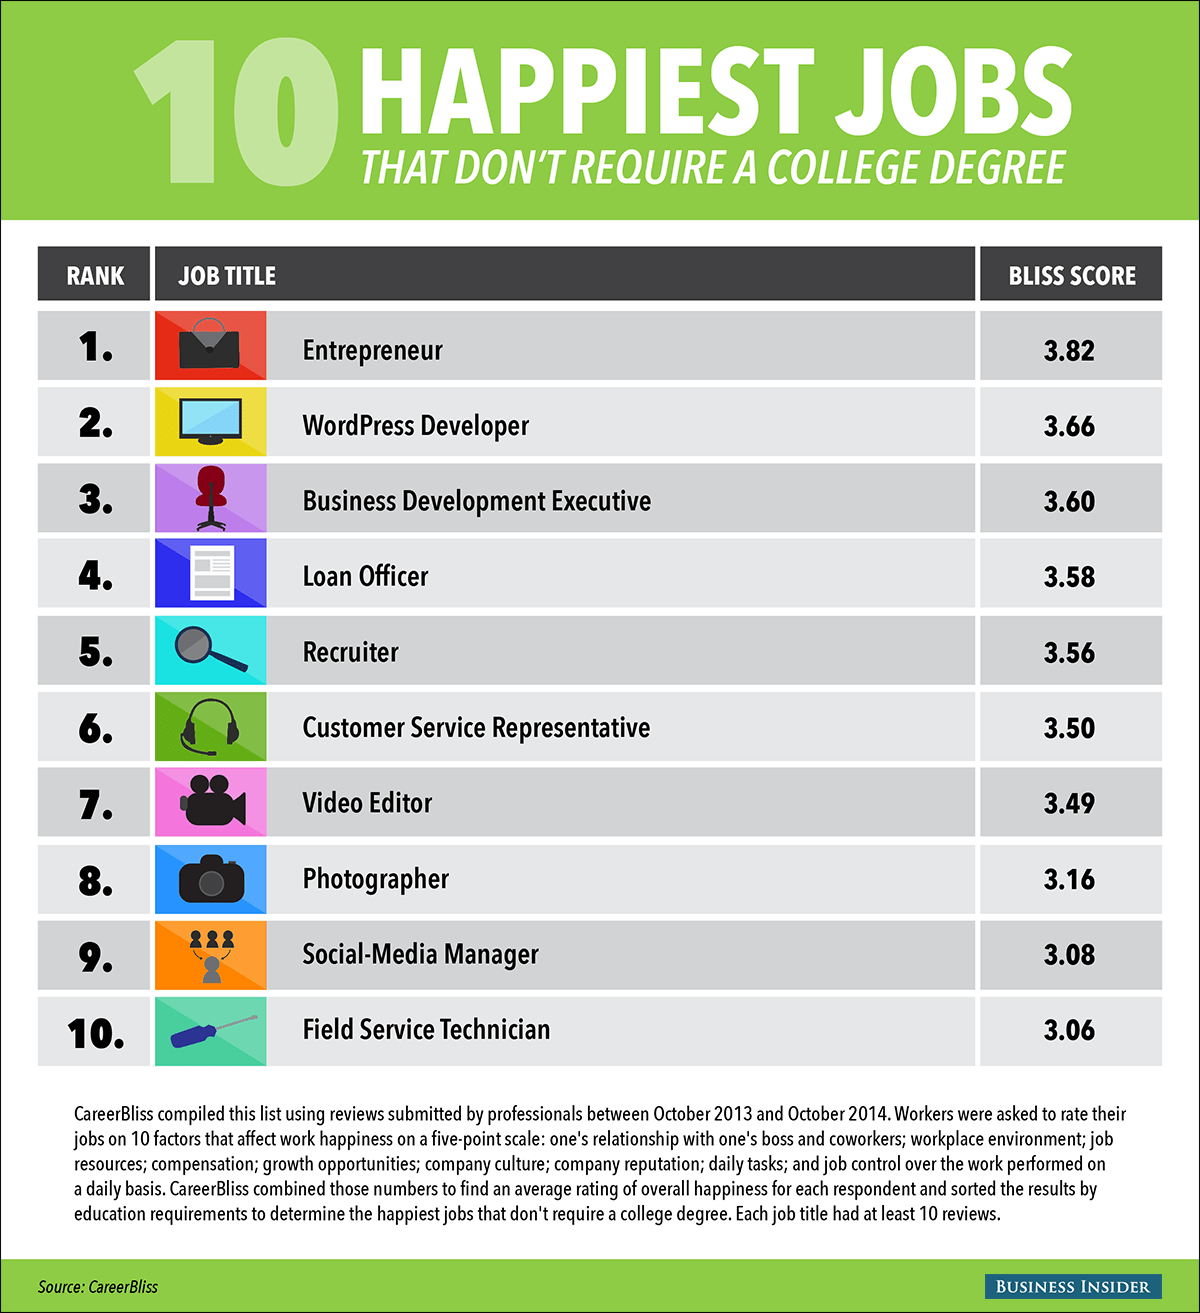 BI_graphics_happiestJobsNoDegree (1)